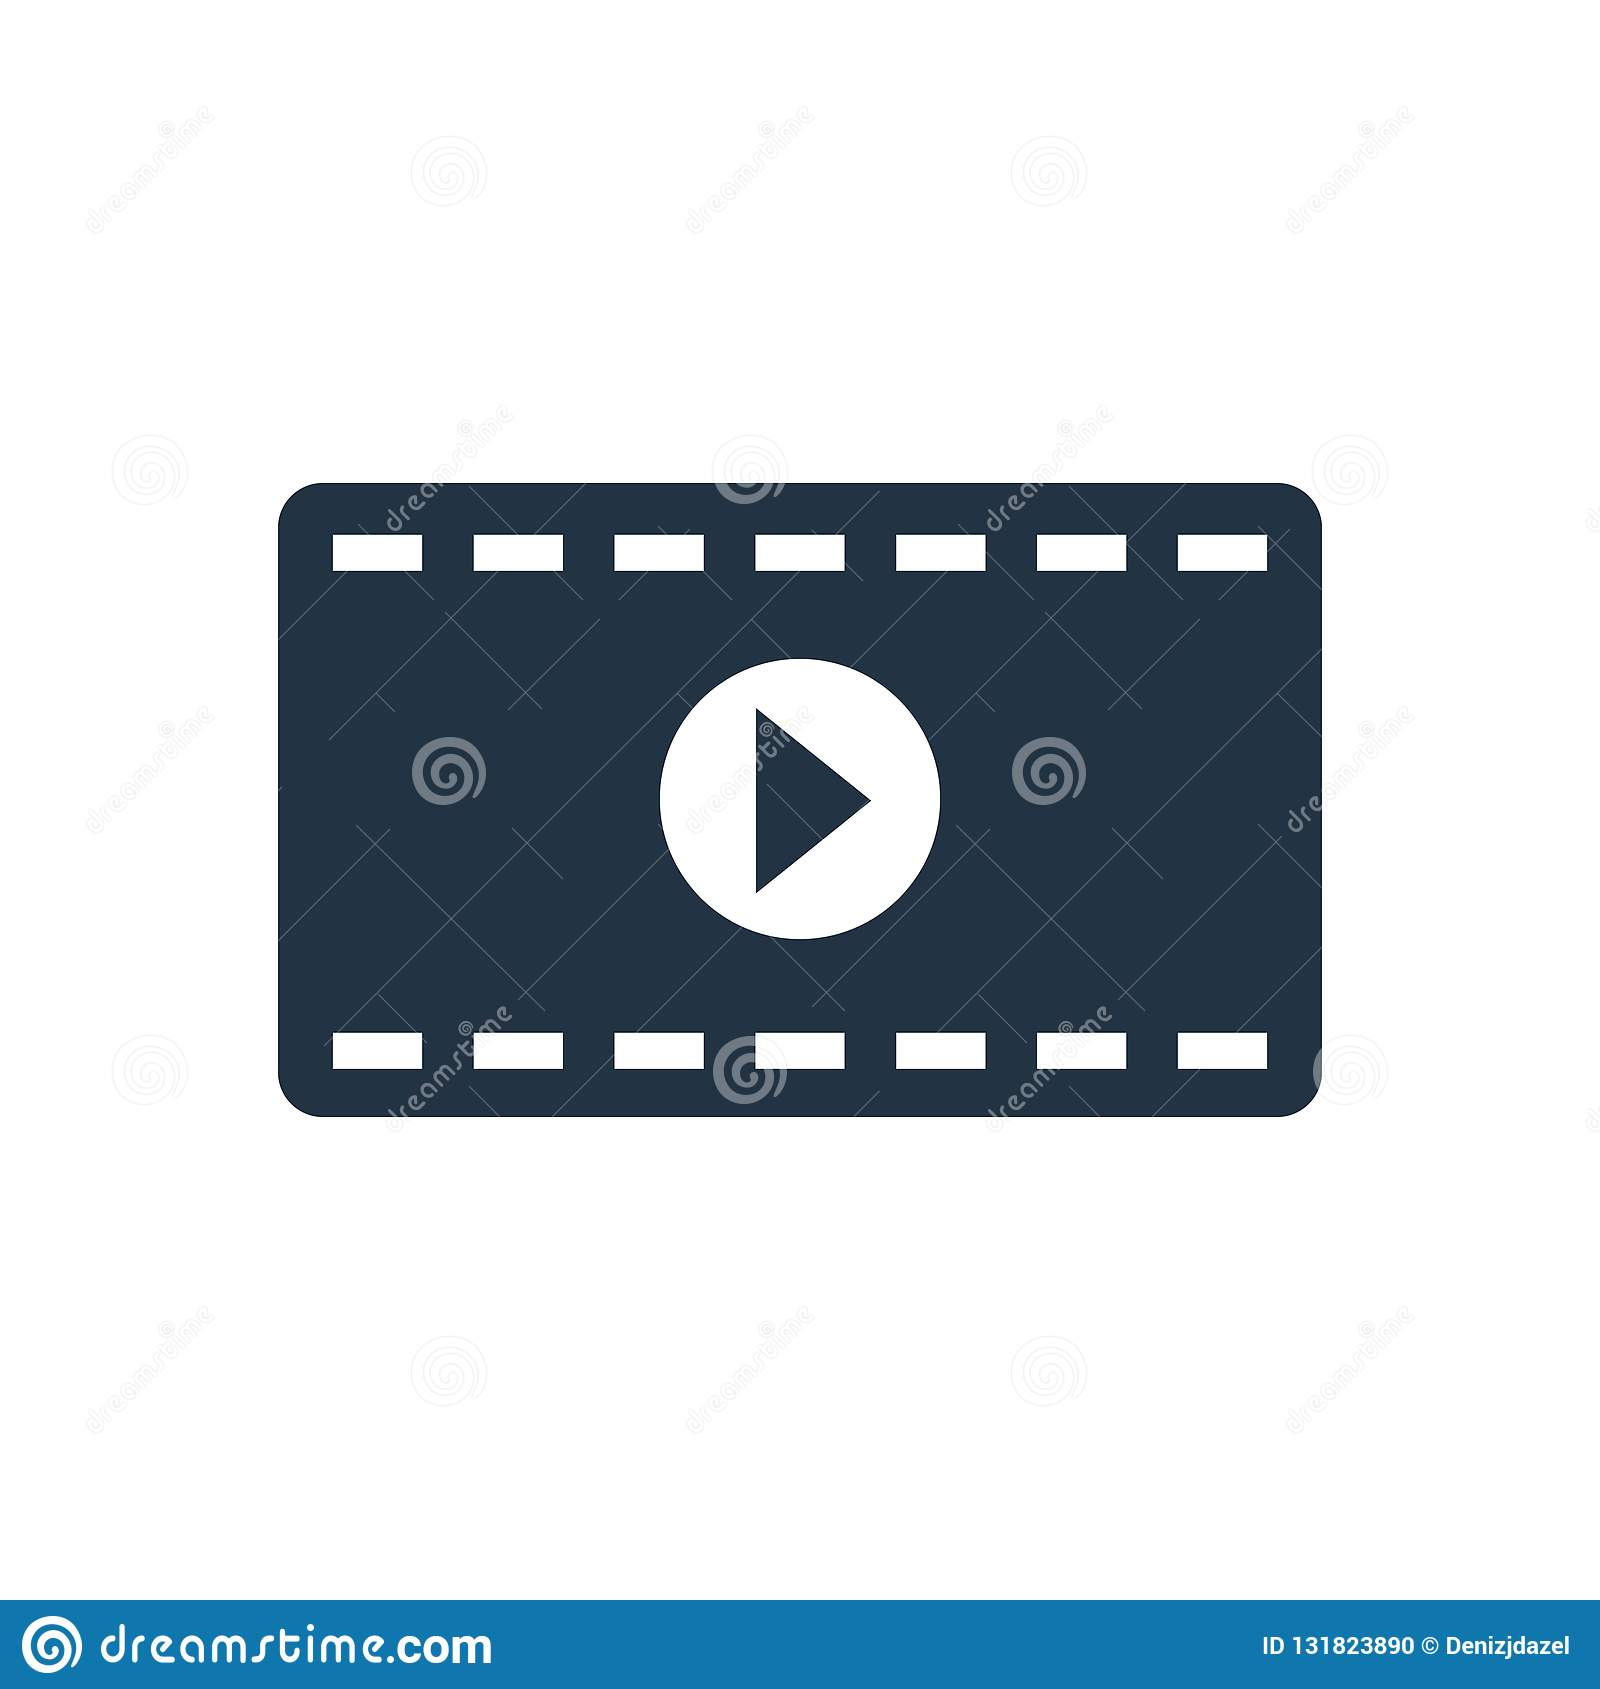 movie vector icon isolated on white background movie logo concept for your design stock vector illustration of clip strip 131823890 dreamstime com